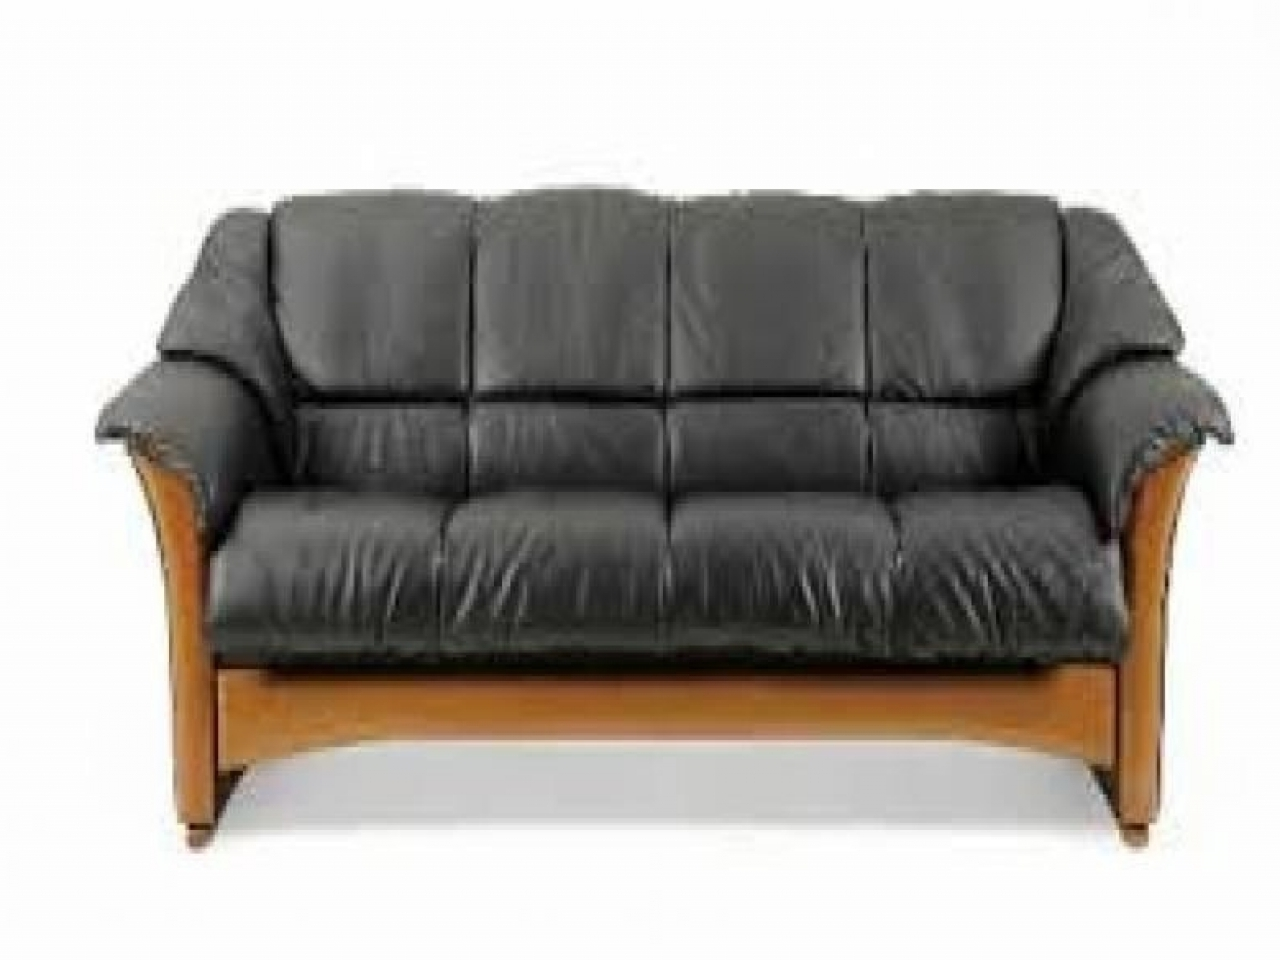 Closeout Sofas For Widely Used Sofa : Closeout Sofas Stimulating Closeout Leather Sofas (View 1 of 15)